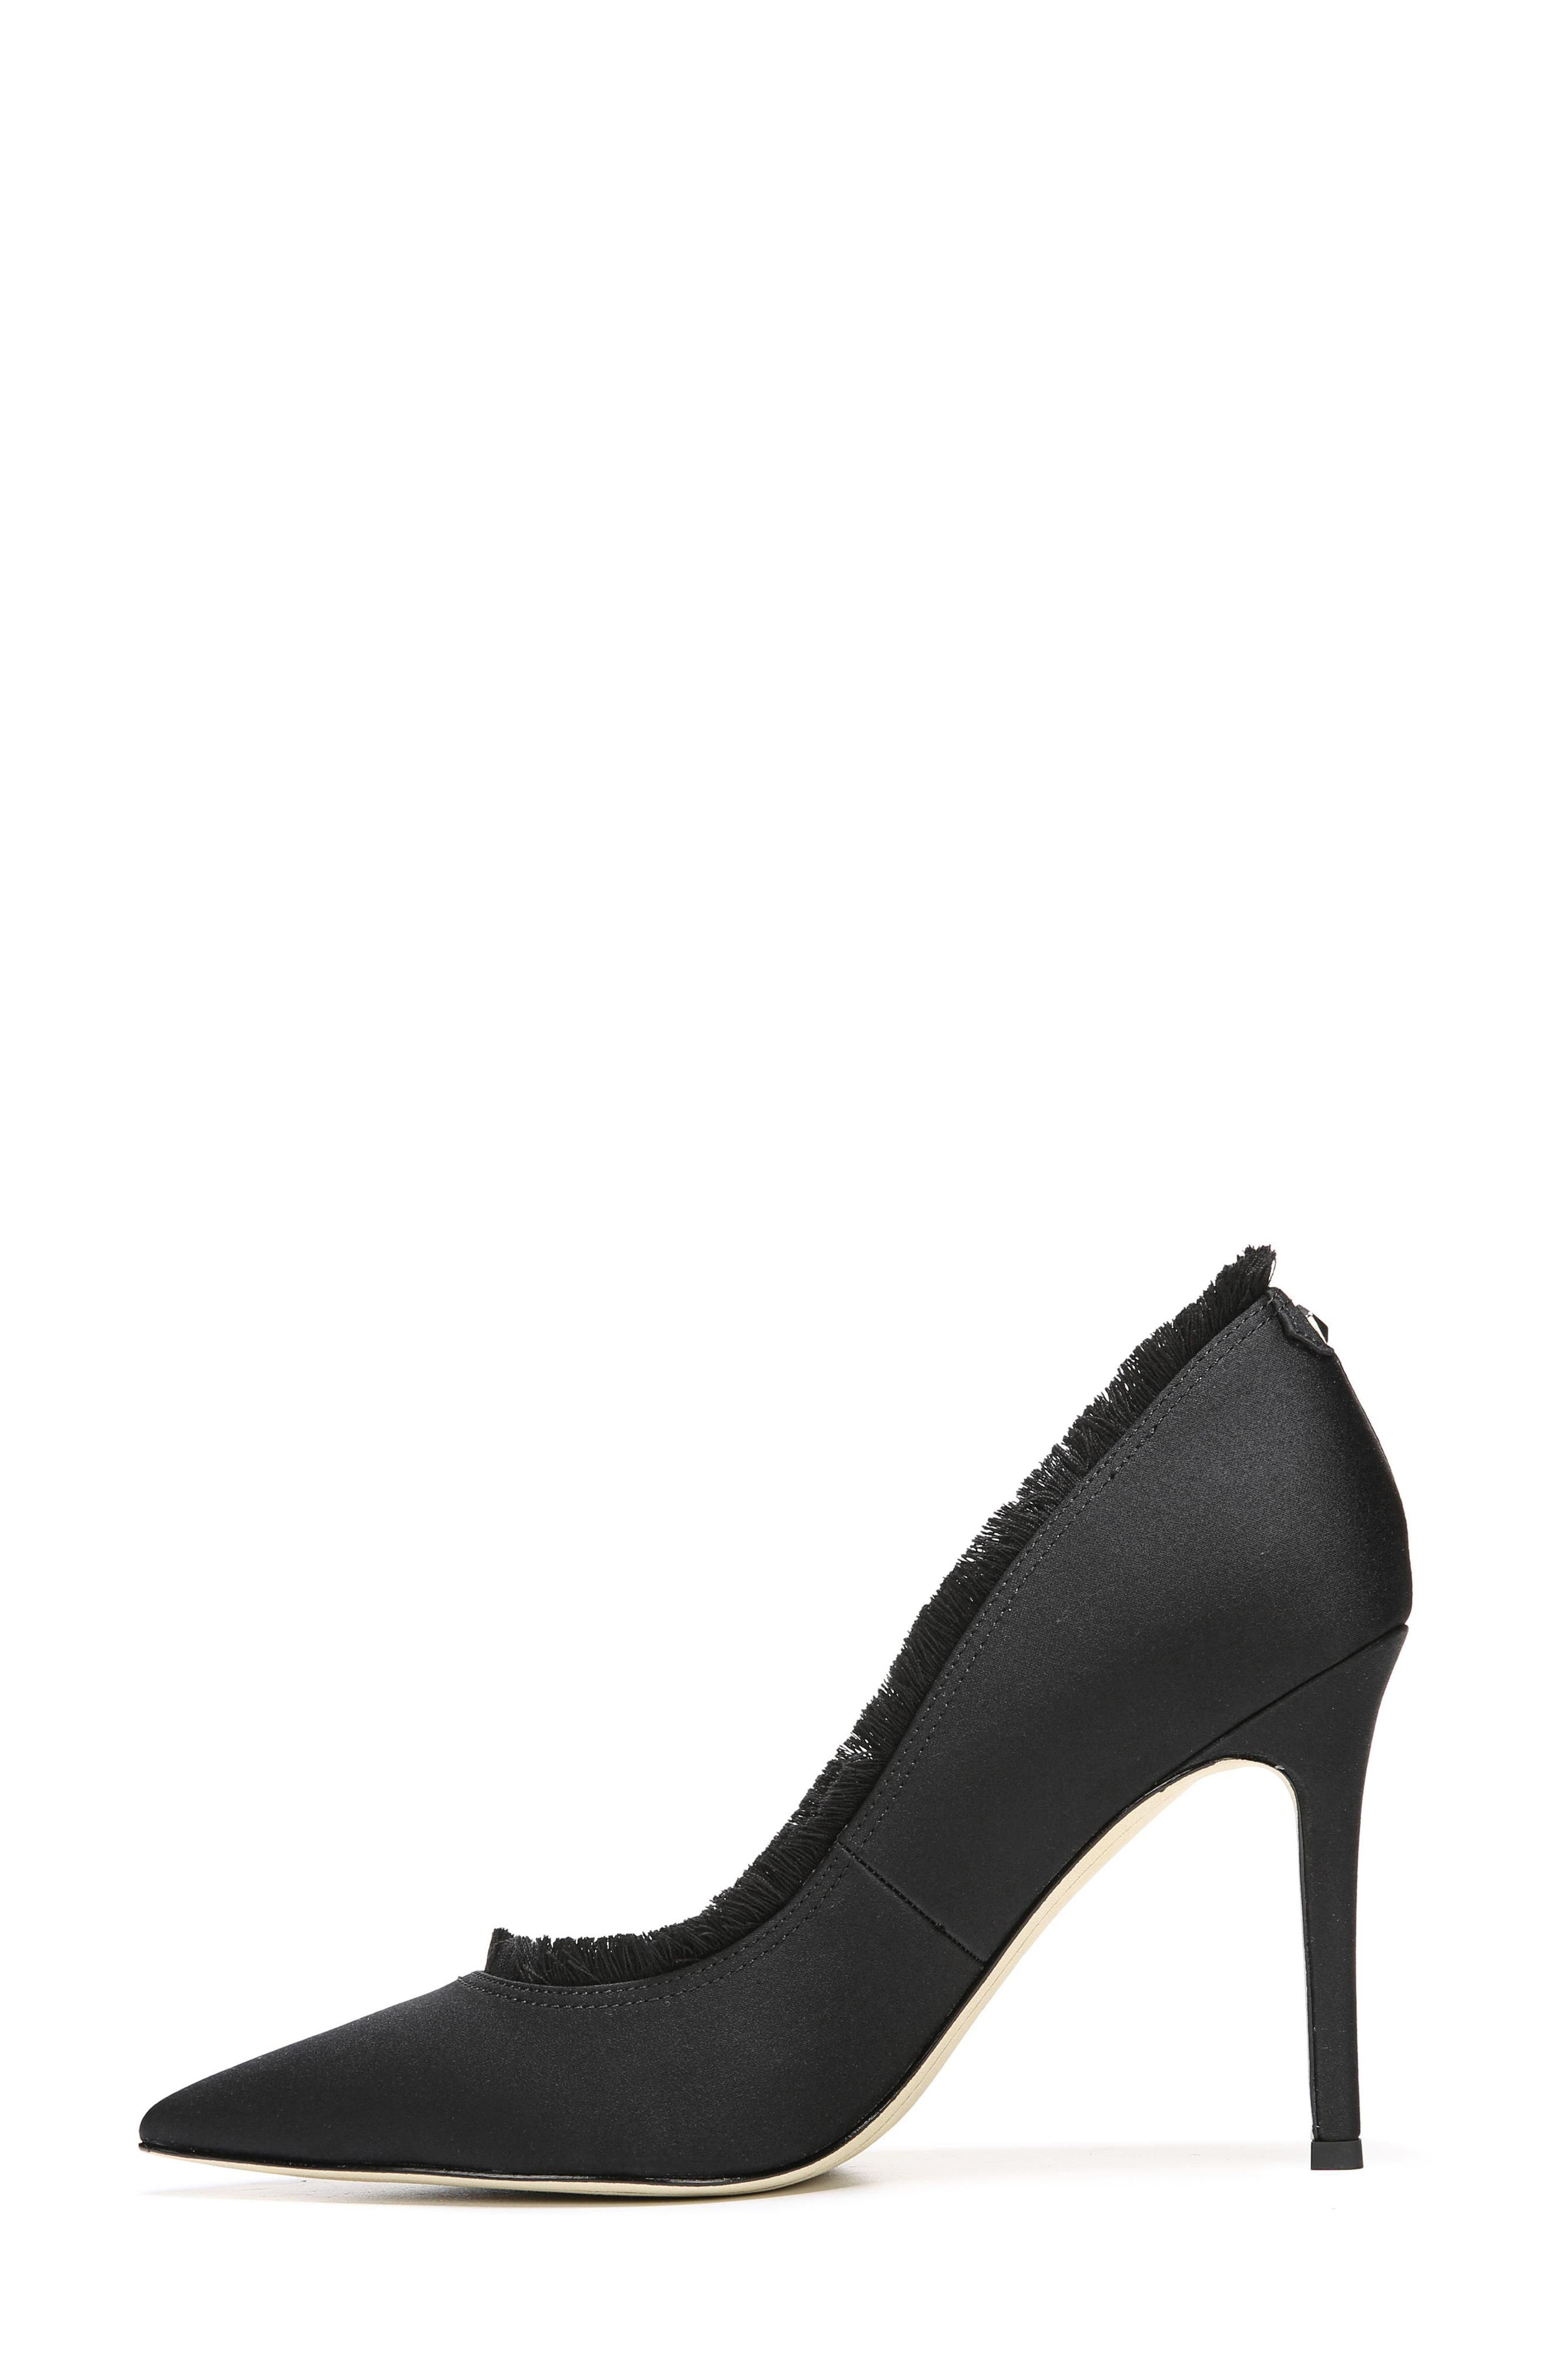 Halan Pointy Toe Pump,                             Alternate thumbnail 3, color,                             001